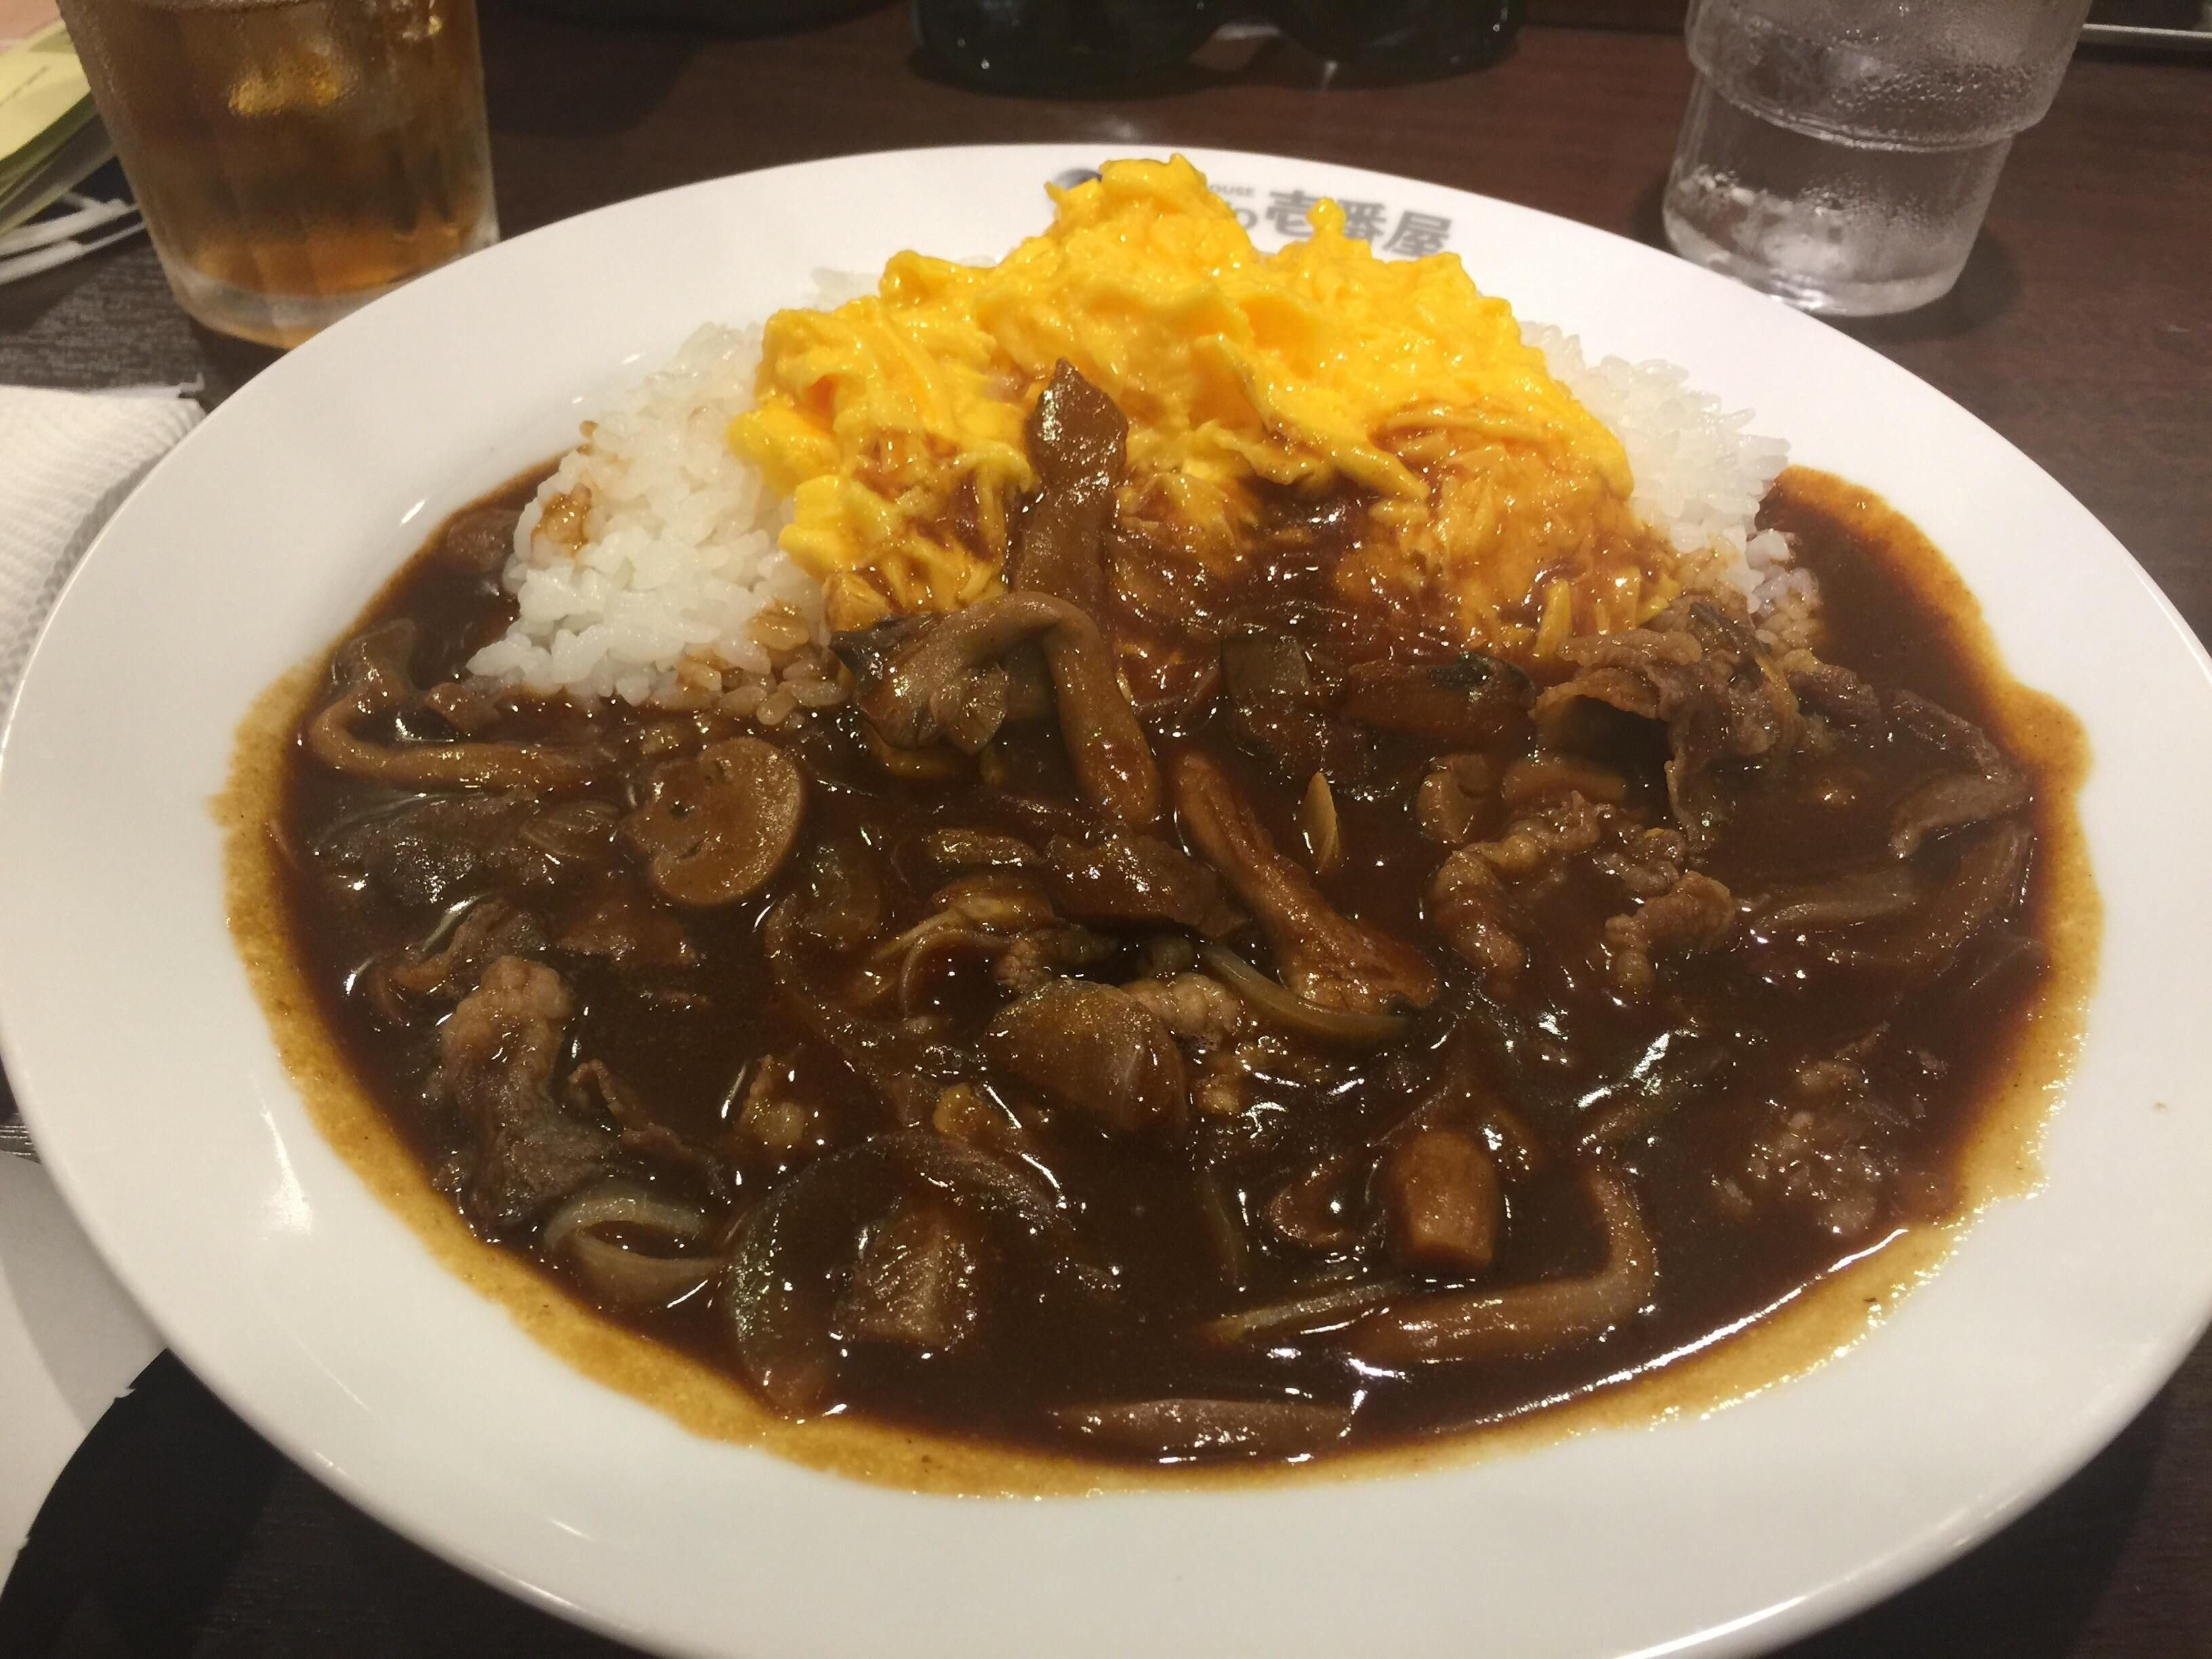 Request Anyone Has The Recipe For This Kind Of Dark Japanese Curry Https I Redd It P6xofmc7a6ez Jpg Recipes Diy Food Recipes Japanese Curry